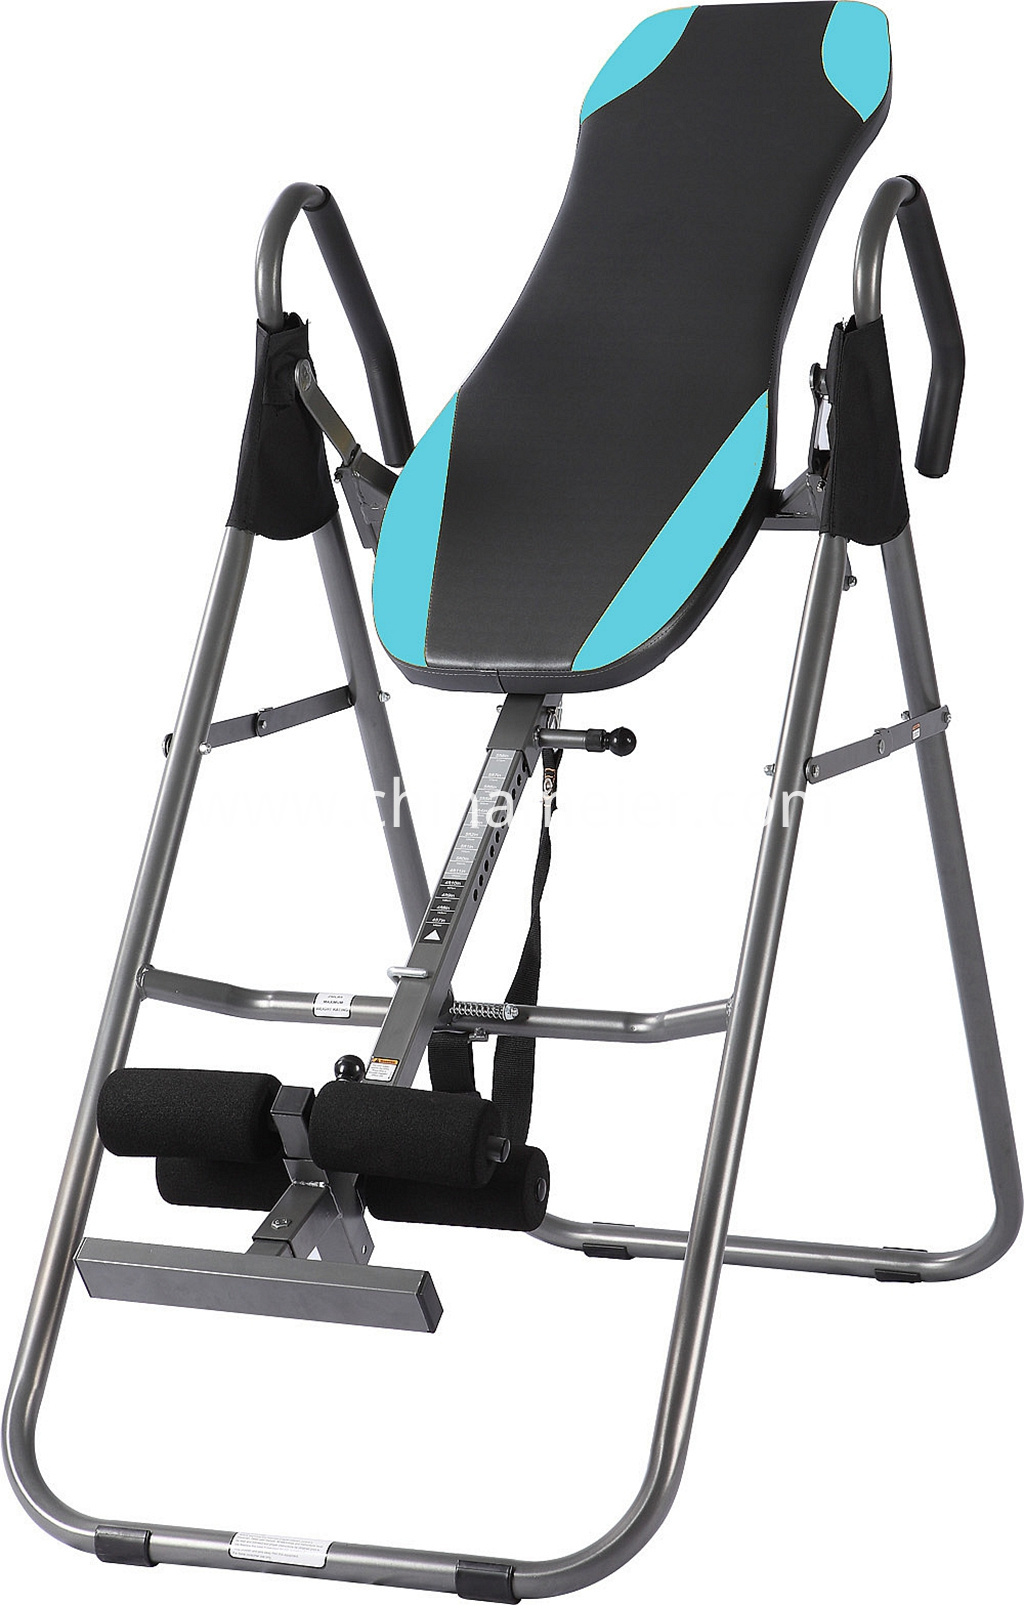 inversion table stretching exercise